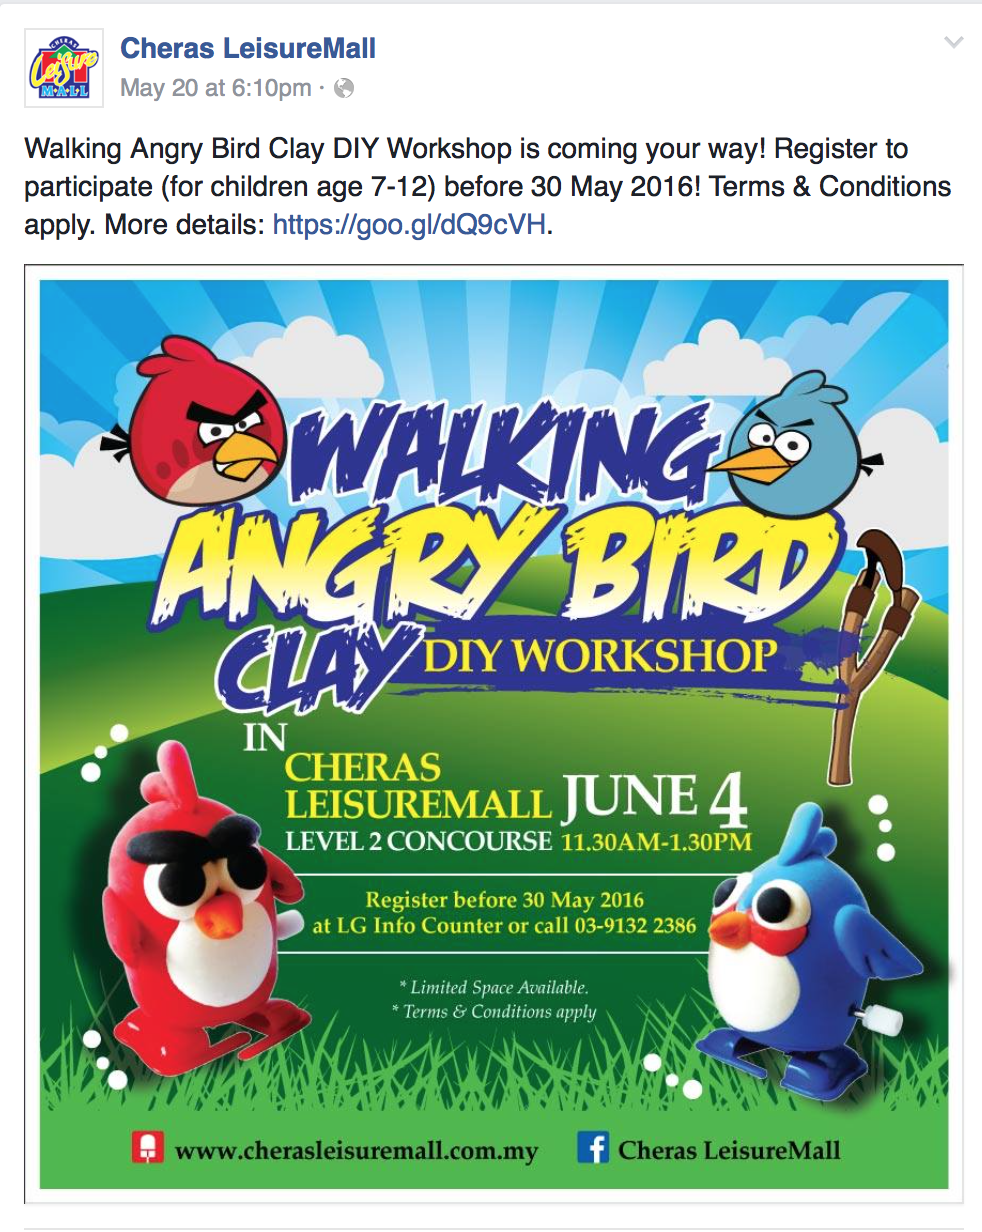 Thank you for Cheras Leisure Mall appointed us again to conduct a craft workshop on 4 June 2016. The Walking Angry Bird Clay DIY Workshop is fun and exciting. Have u ever saw a clay angry bird can walking? Kids, mark down the date, ask papa or mummy to help you register today!